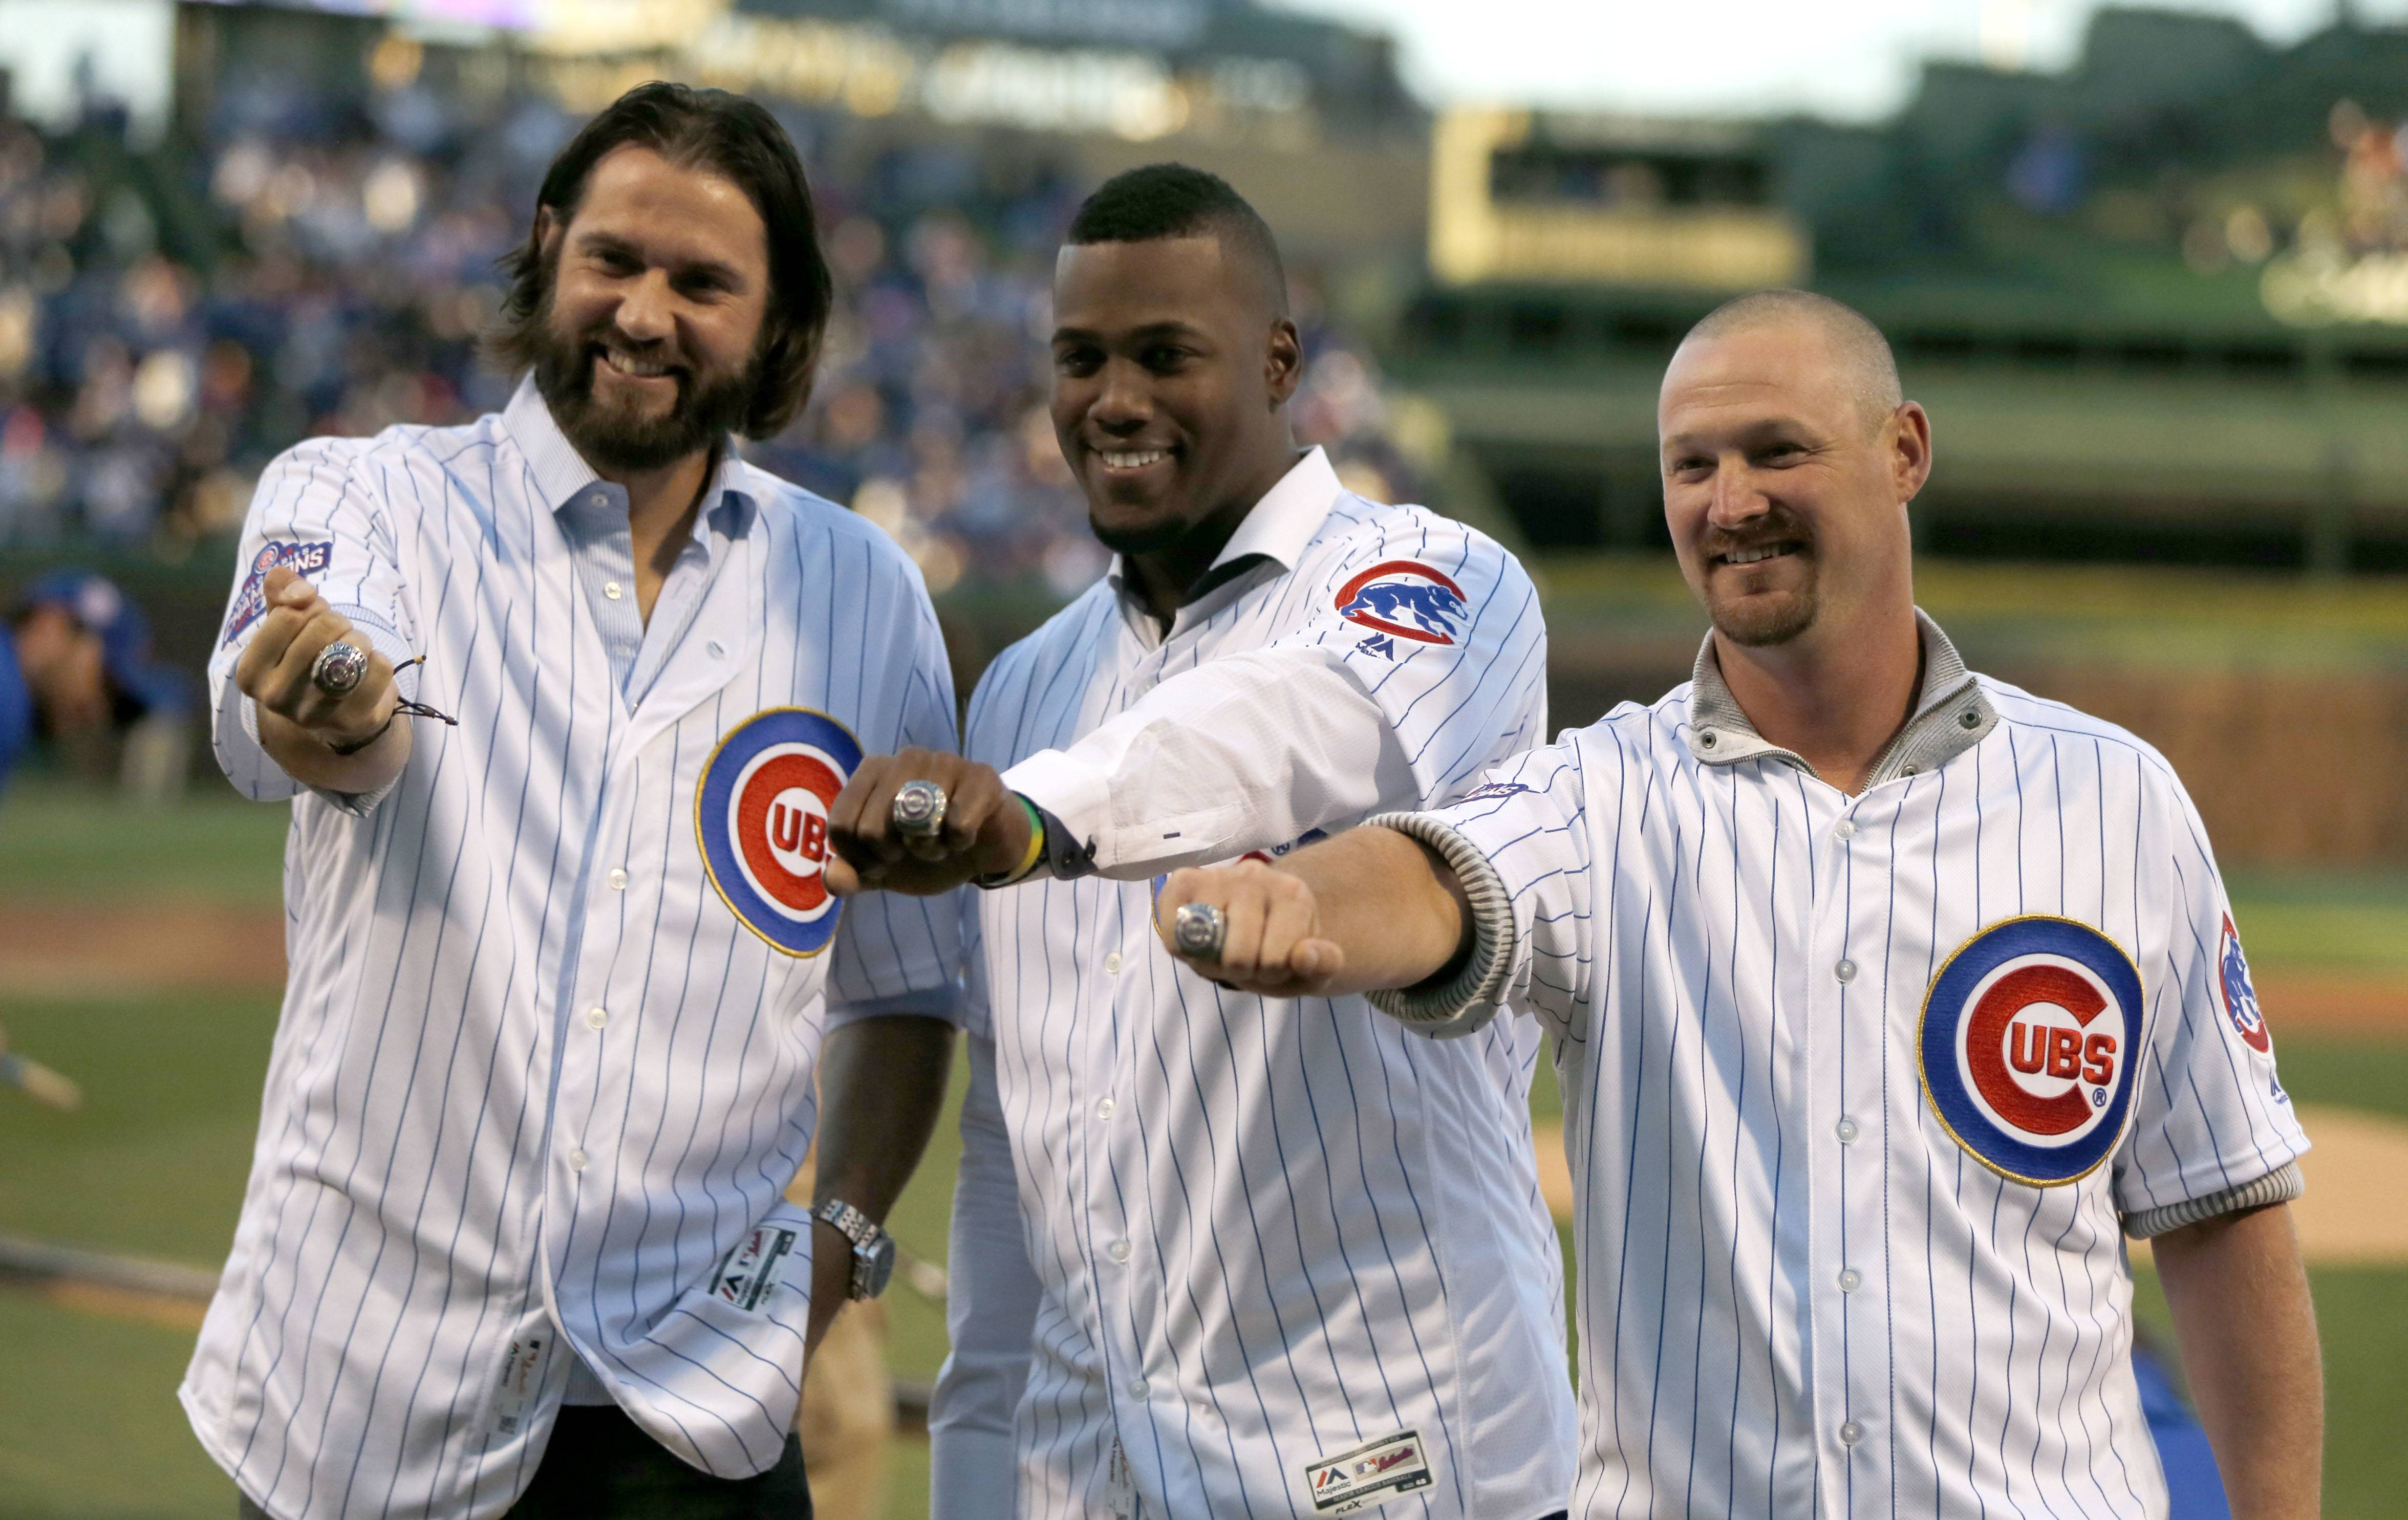 Chicago Cubs happy to welcome back three friends